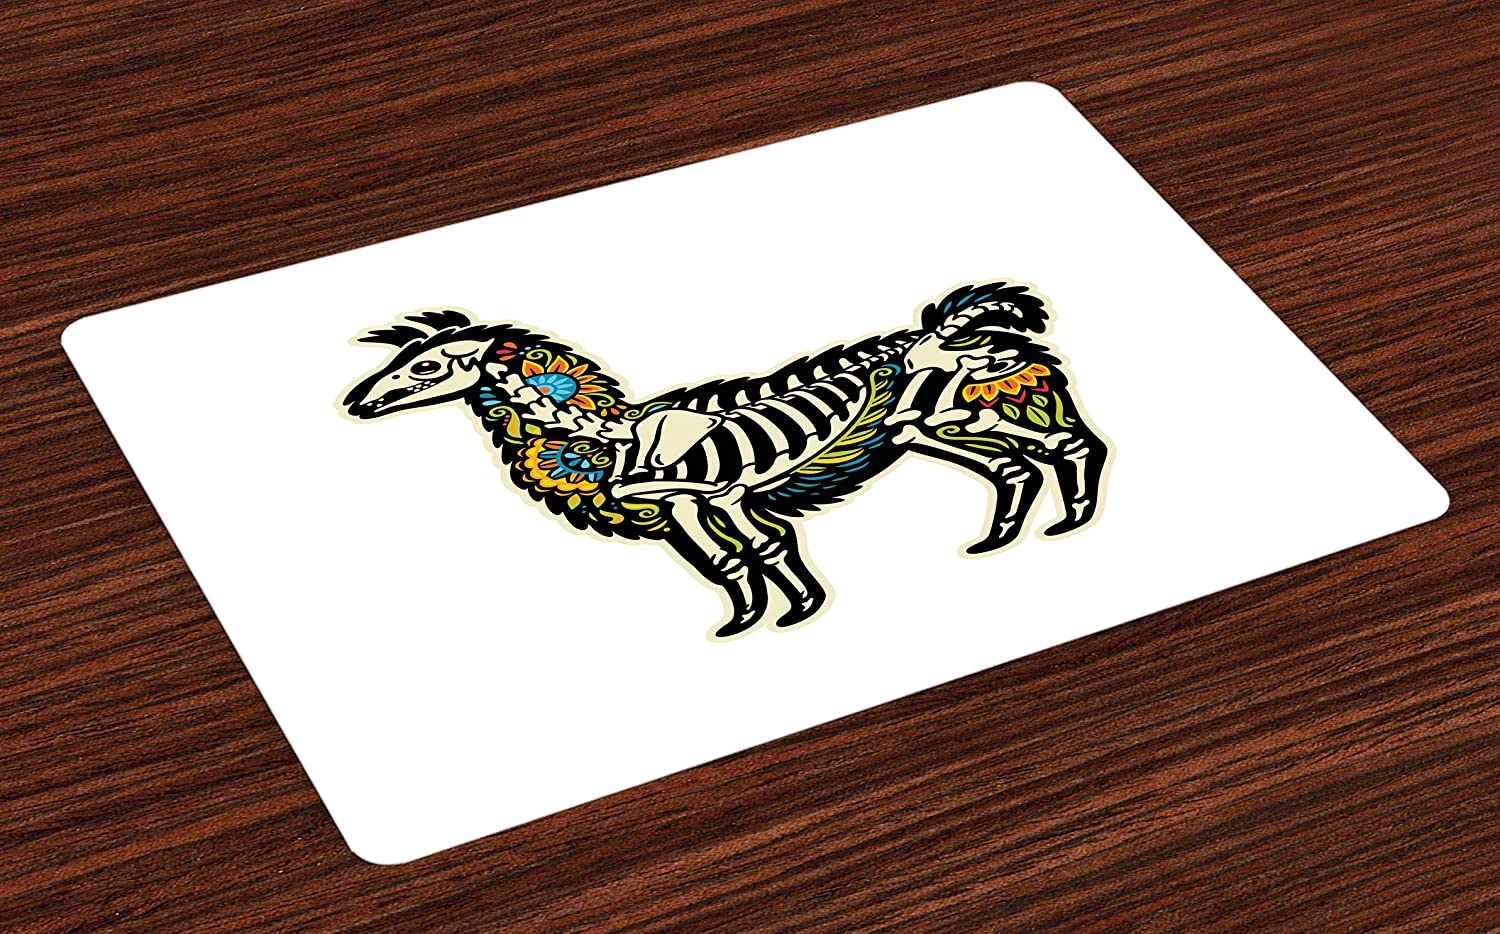 Ambesonne Llama Place Mats Set of 4, Sugar Skull Style Alpaca Animal Skeleton and Colorful Floral Details Day of The Dead, Washable Fabric Placemats for Dining Table, Standard Size, Beige Black